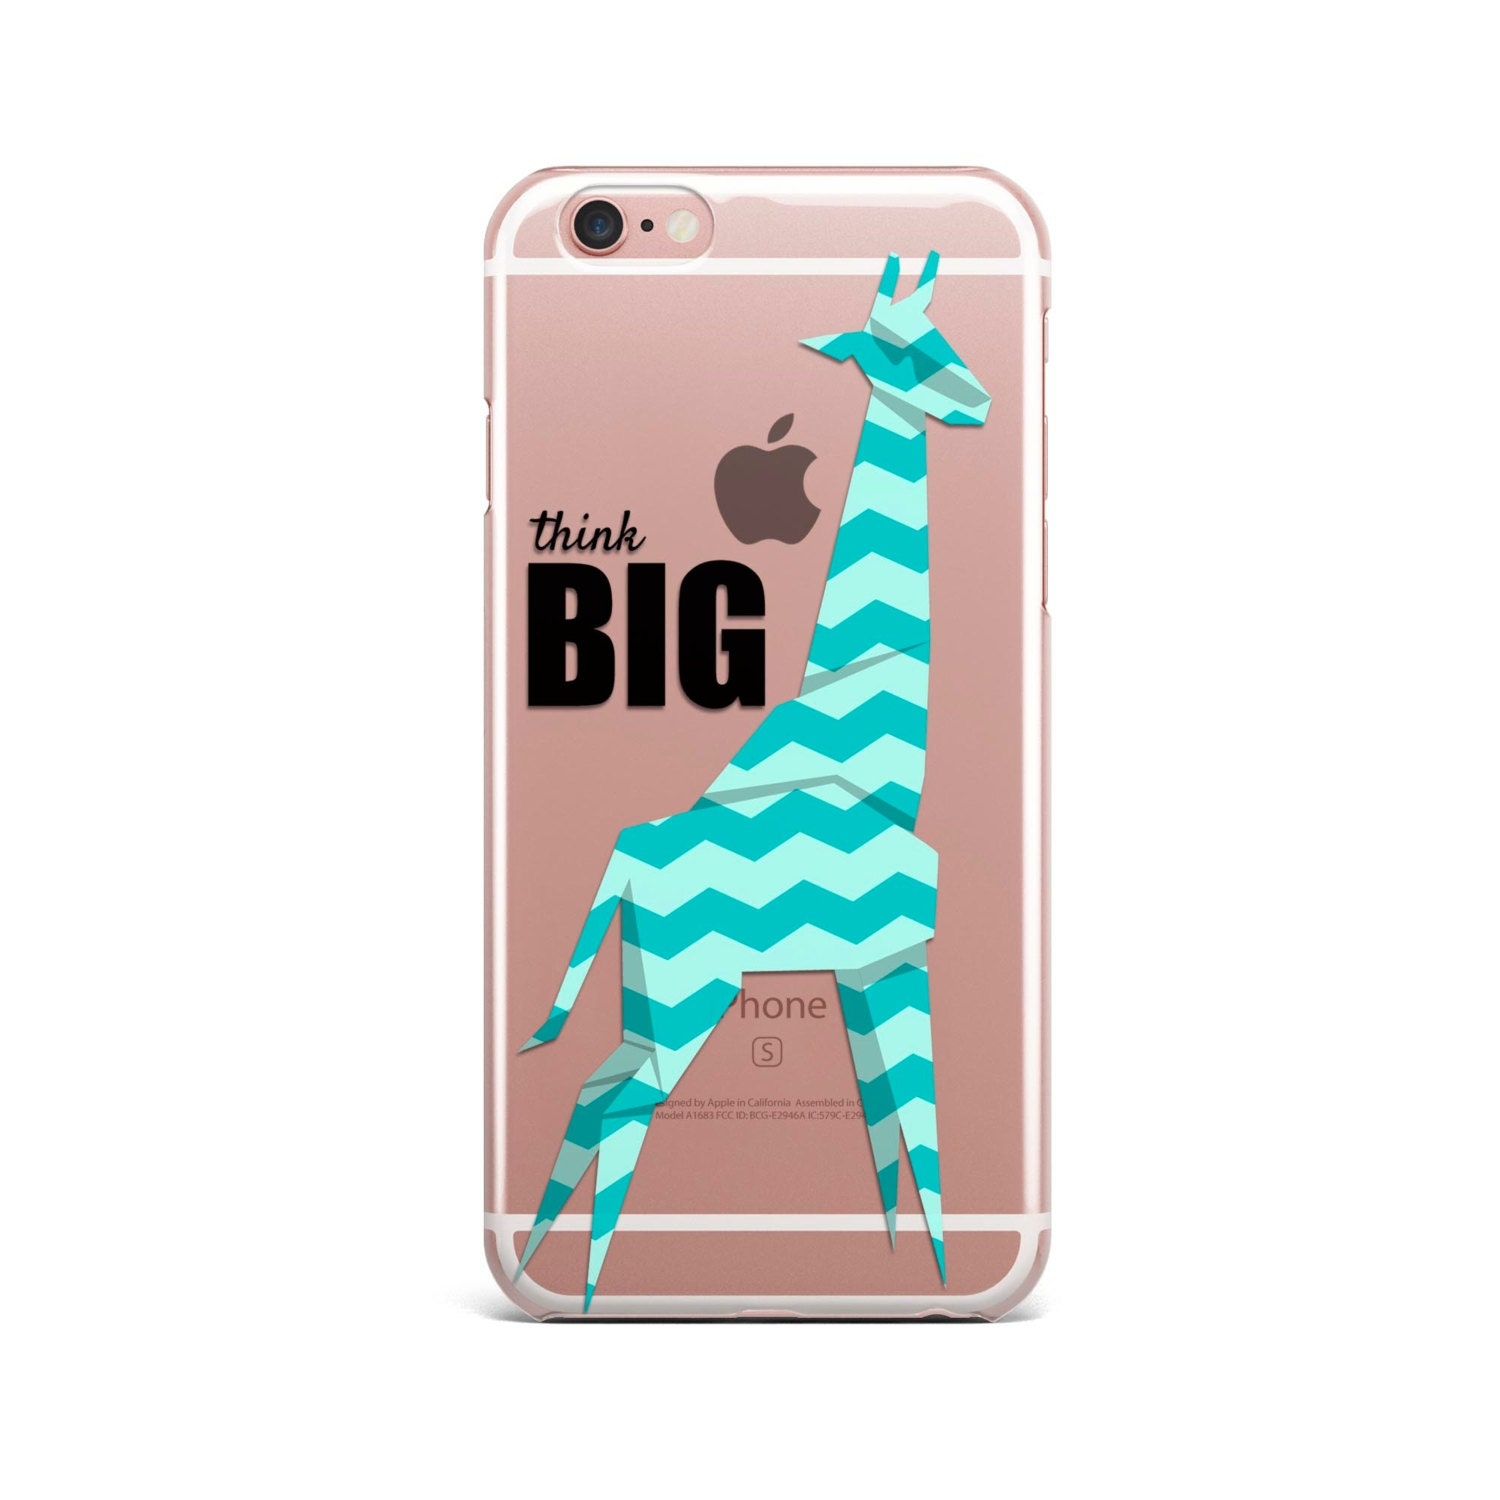 Think BIG, iPhone 7 Case QUOTE iPhone 6S case clear,iPhone